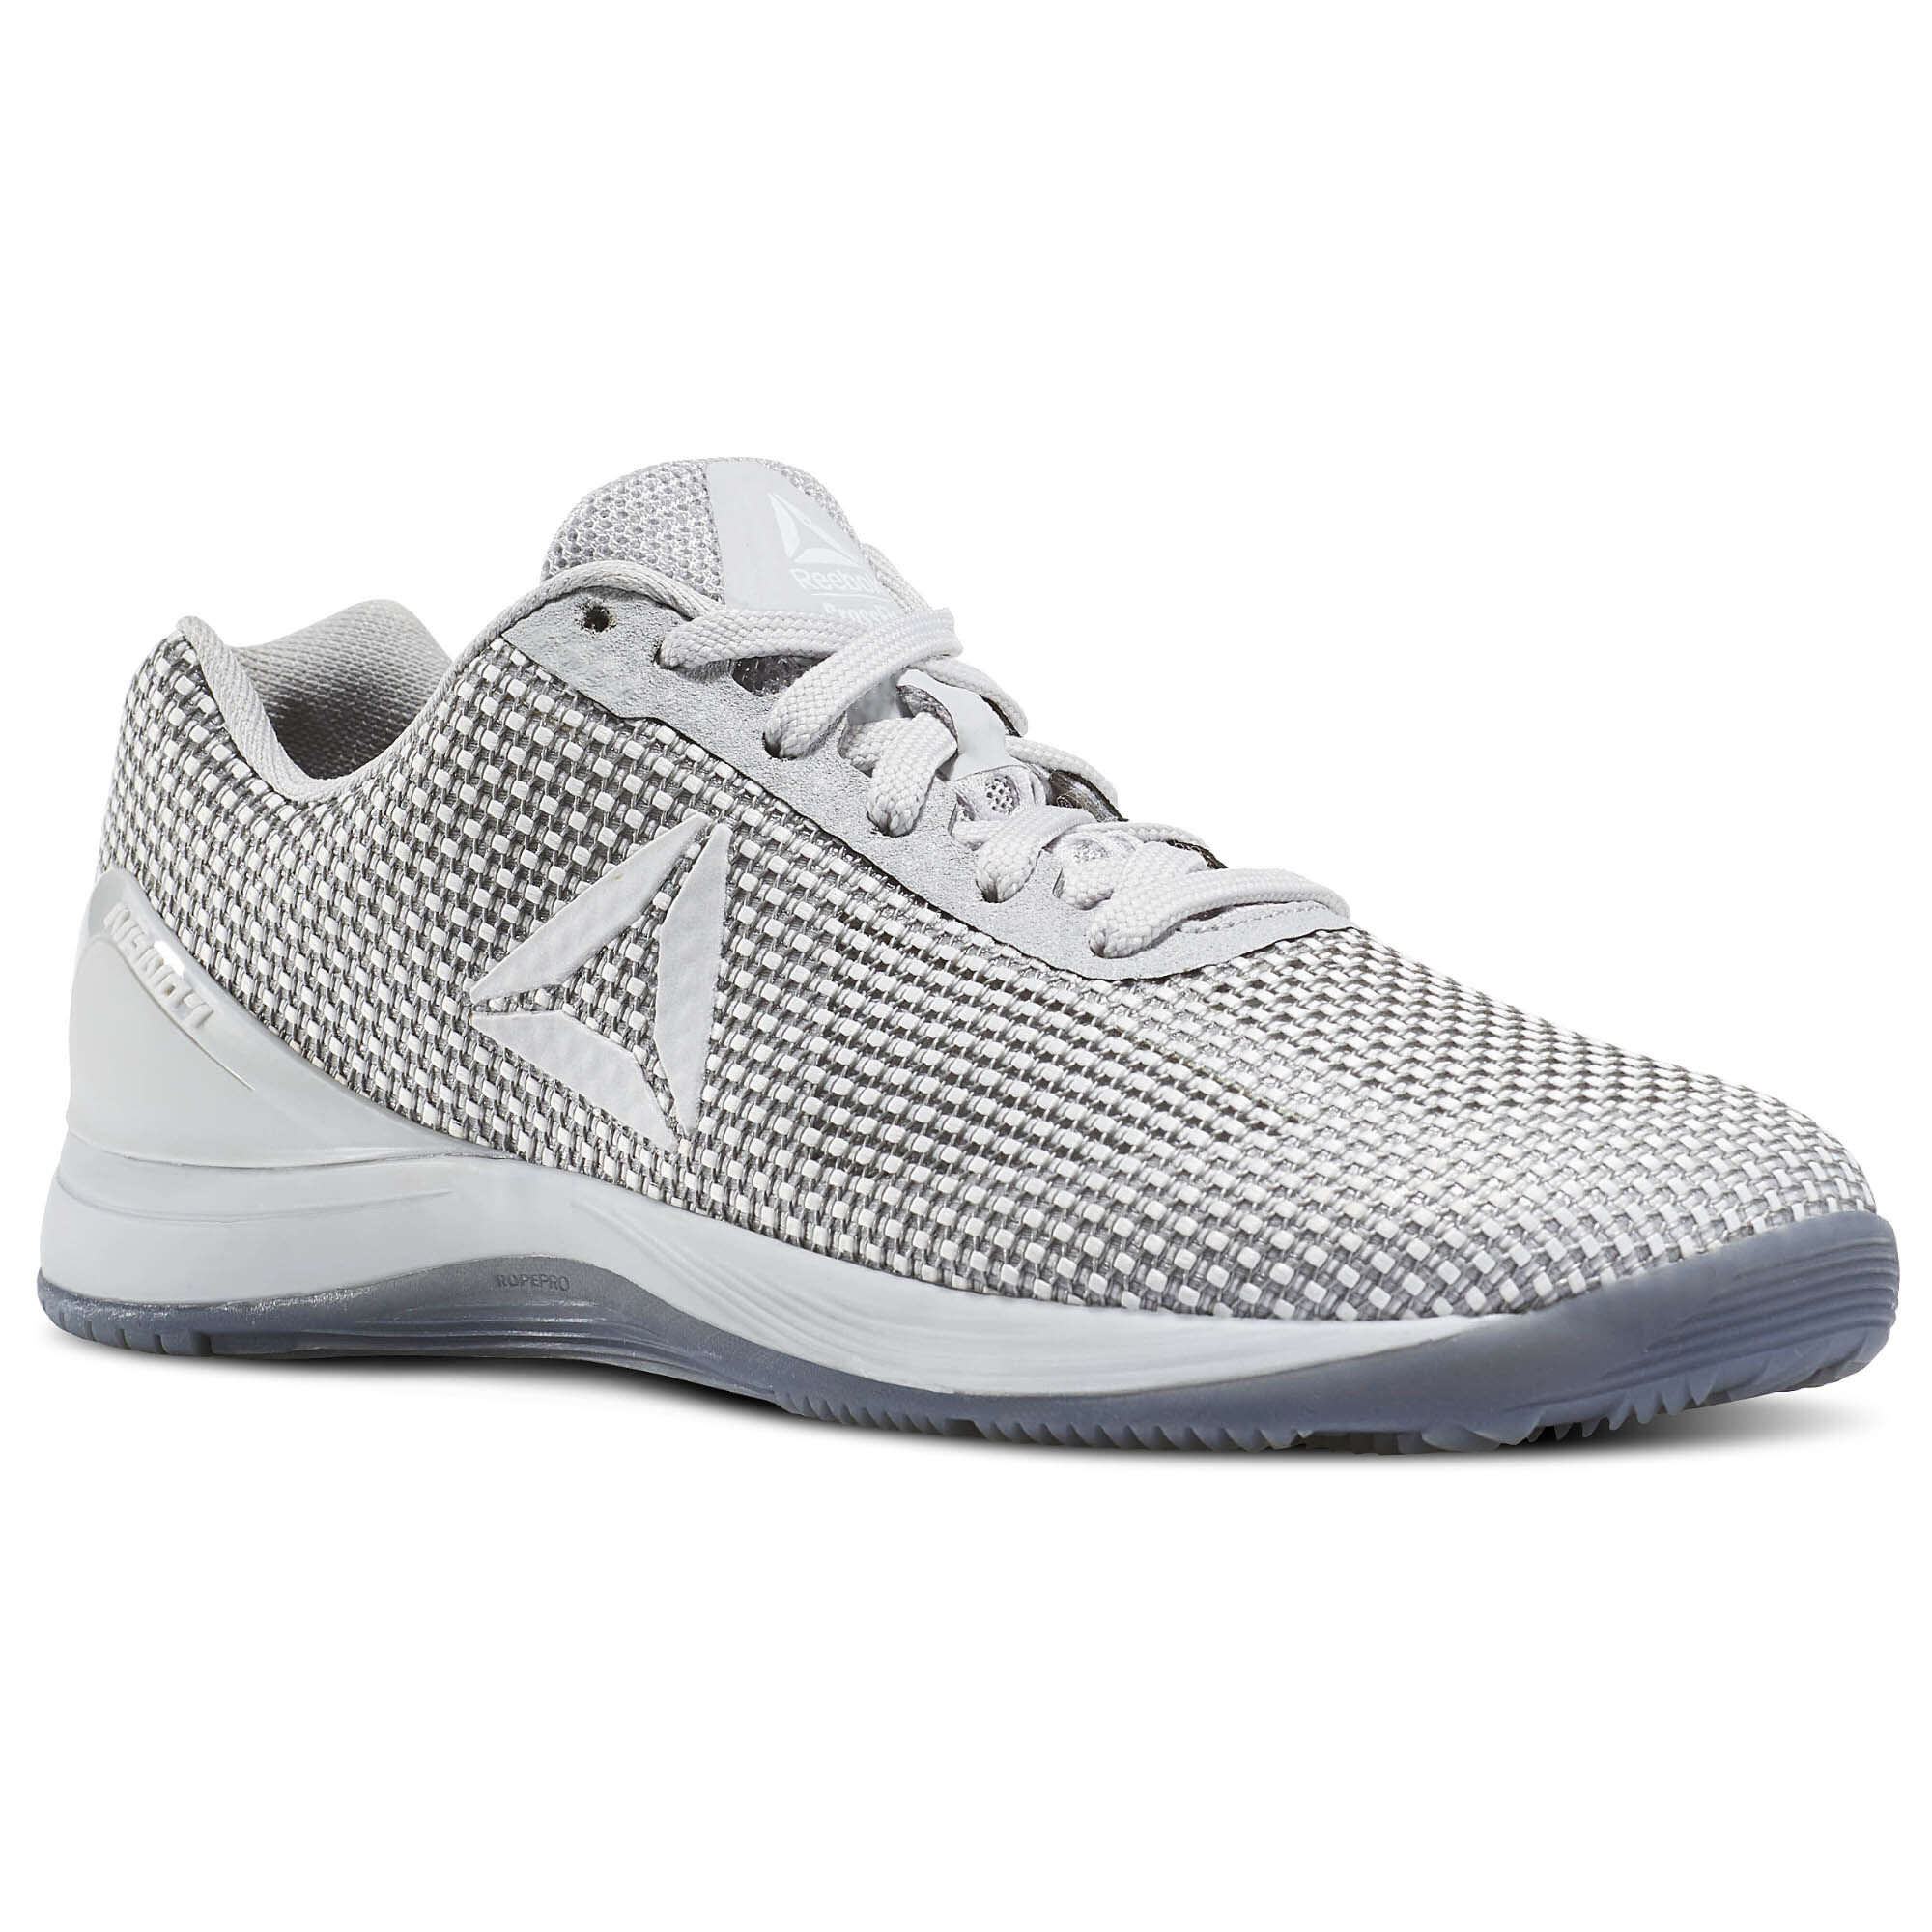 4190163402b6 reebok new arrival shoes cheap   OFF49% The Largest Catalog Discounts